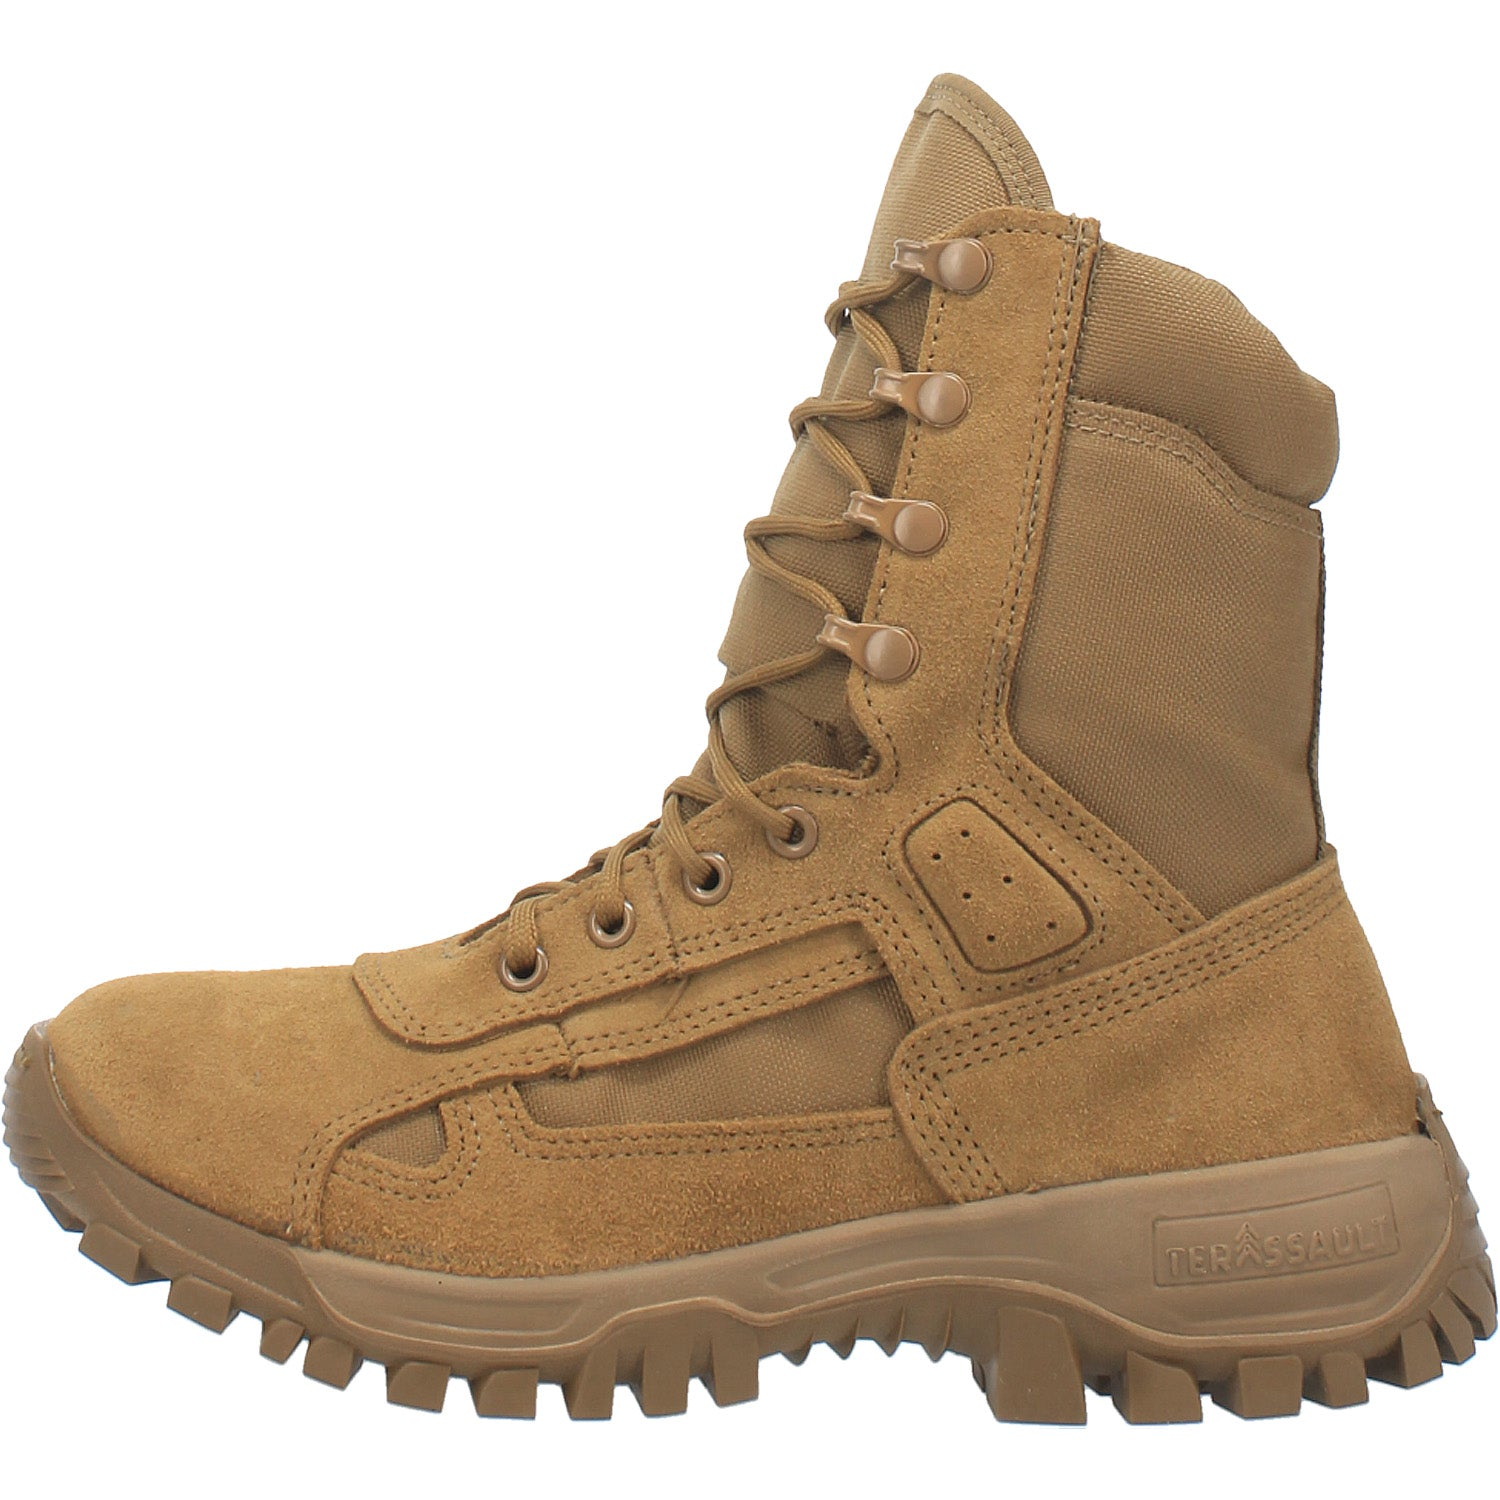 Terassault T1 Hot Weather Performance Combat Boot 14940747235370